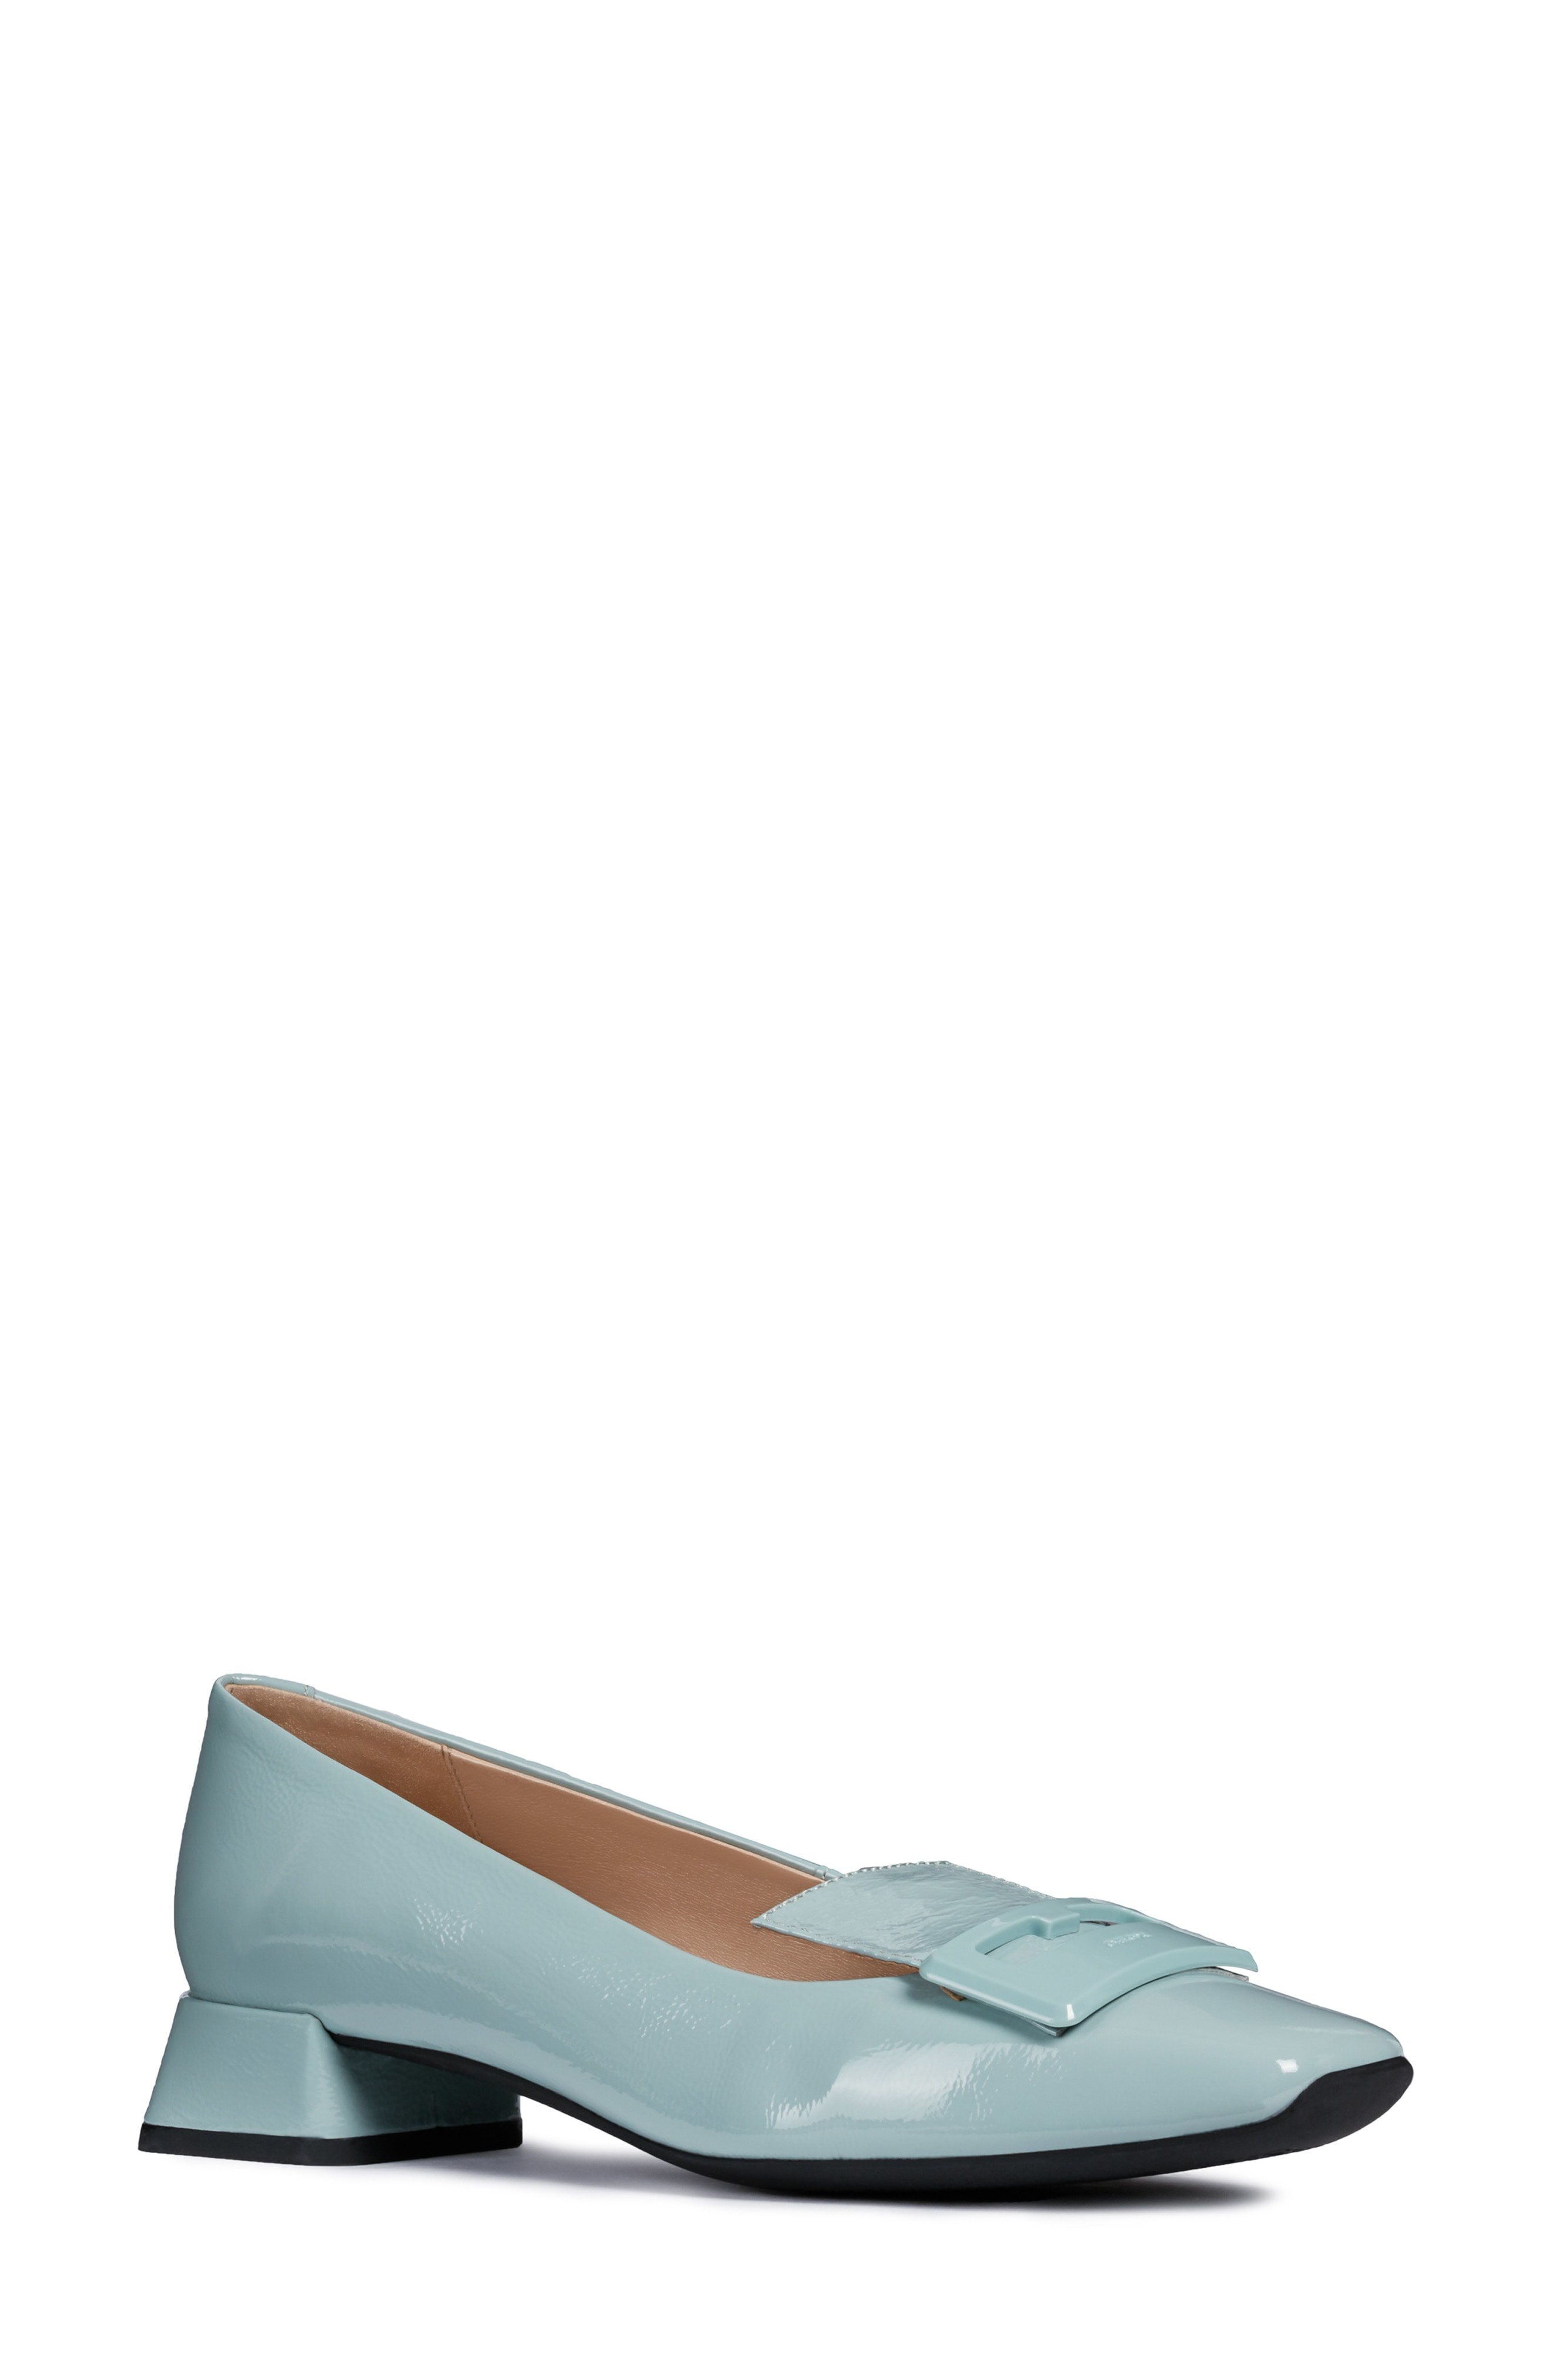 Vivyanne Square Toe Loafer Pump In Light Green Leather